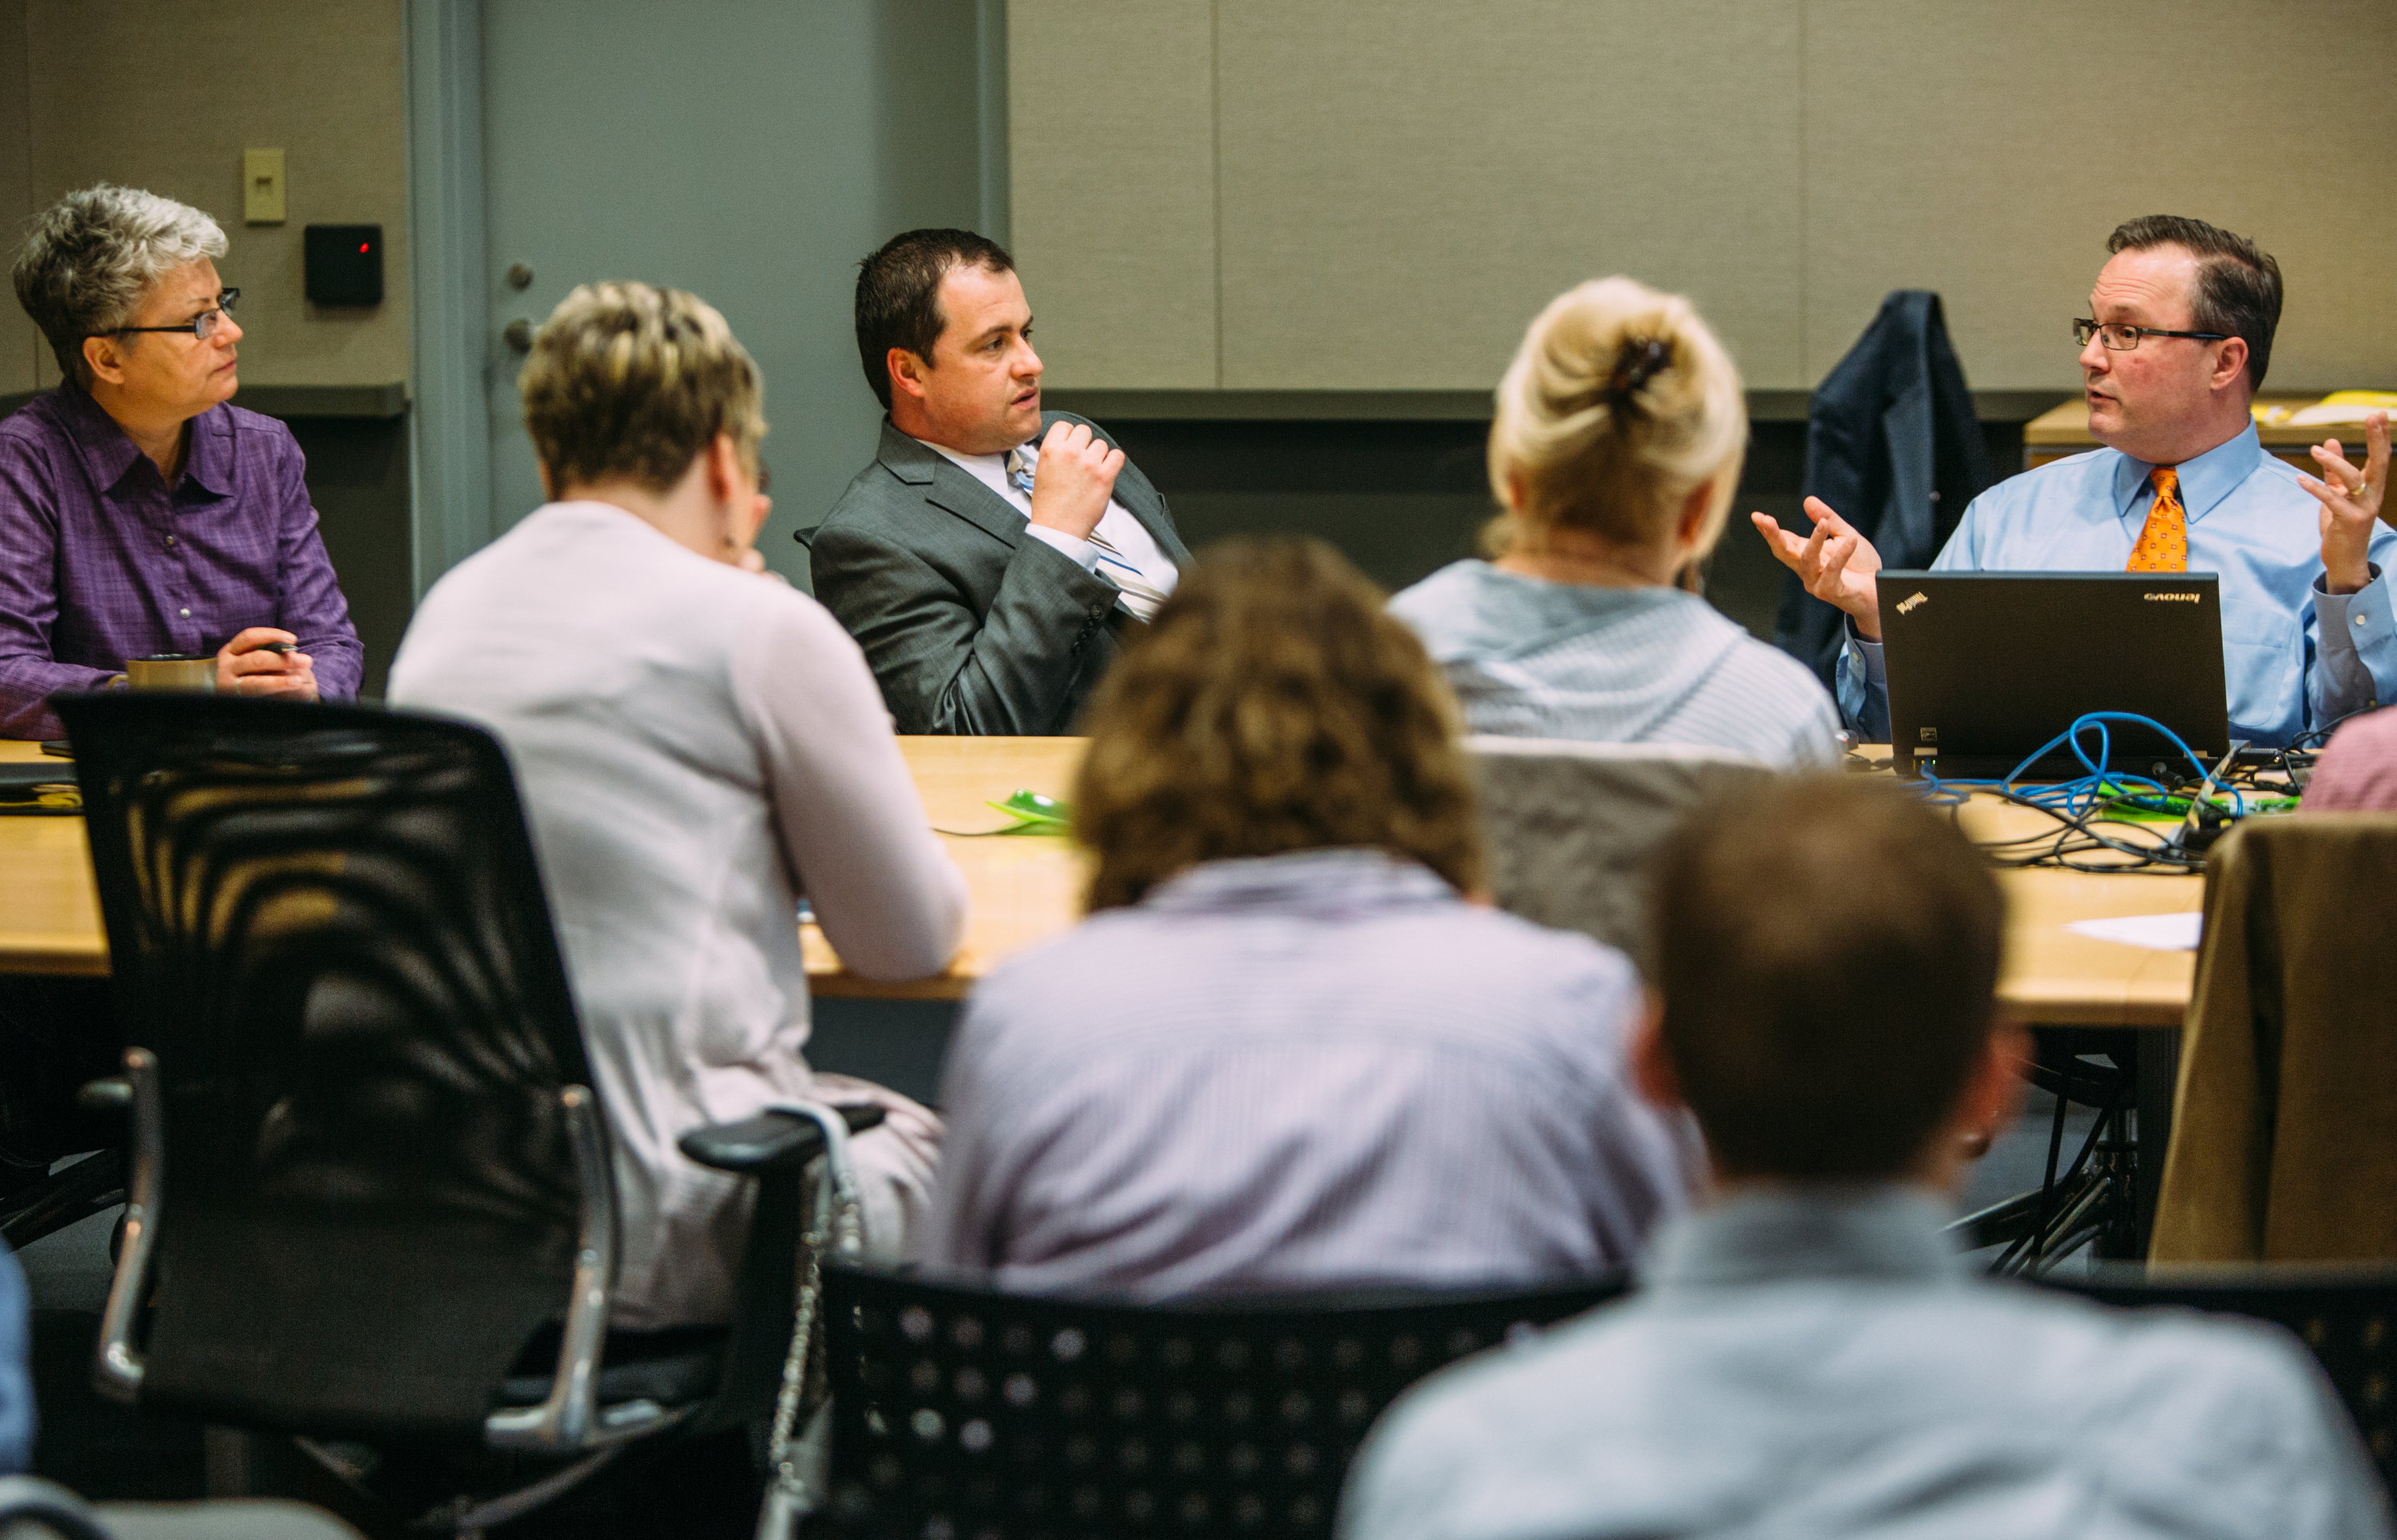 20150408ARElectricAuctionBusiness3-2 Jon Harvey of EnerNOC, far right, talks with Jim Sloss, deputy director of innovation and performance for the City of Pittsburgh, and Jackie Vincunas, CFO of the Pittsburgh Zoo & PPG Aquarium during a meeting of local utility managers at the David L. Lawrence Convention Center on Wednesday.